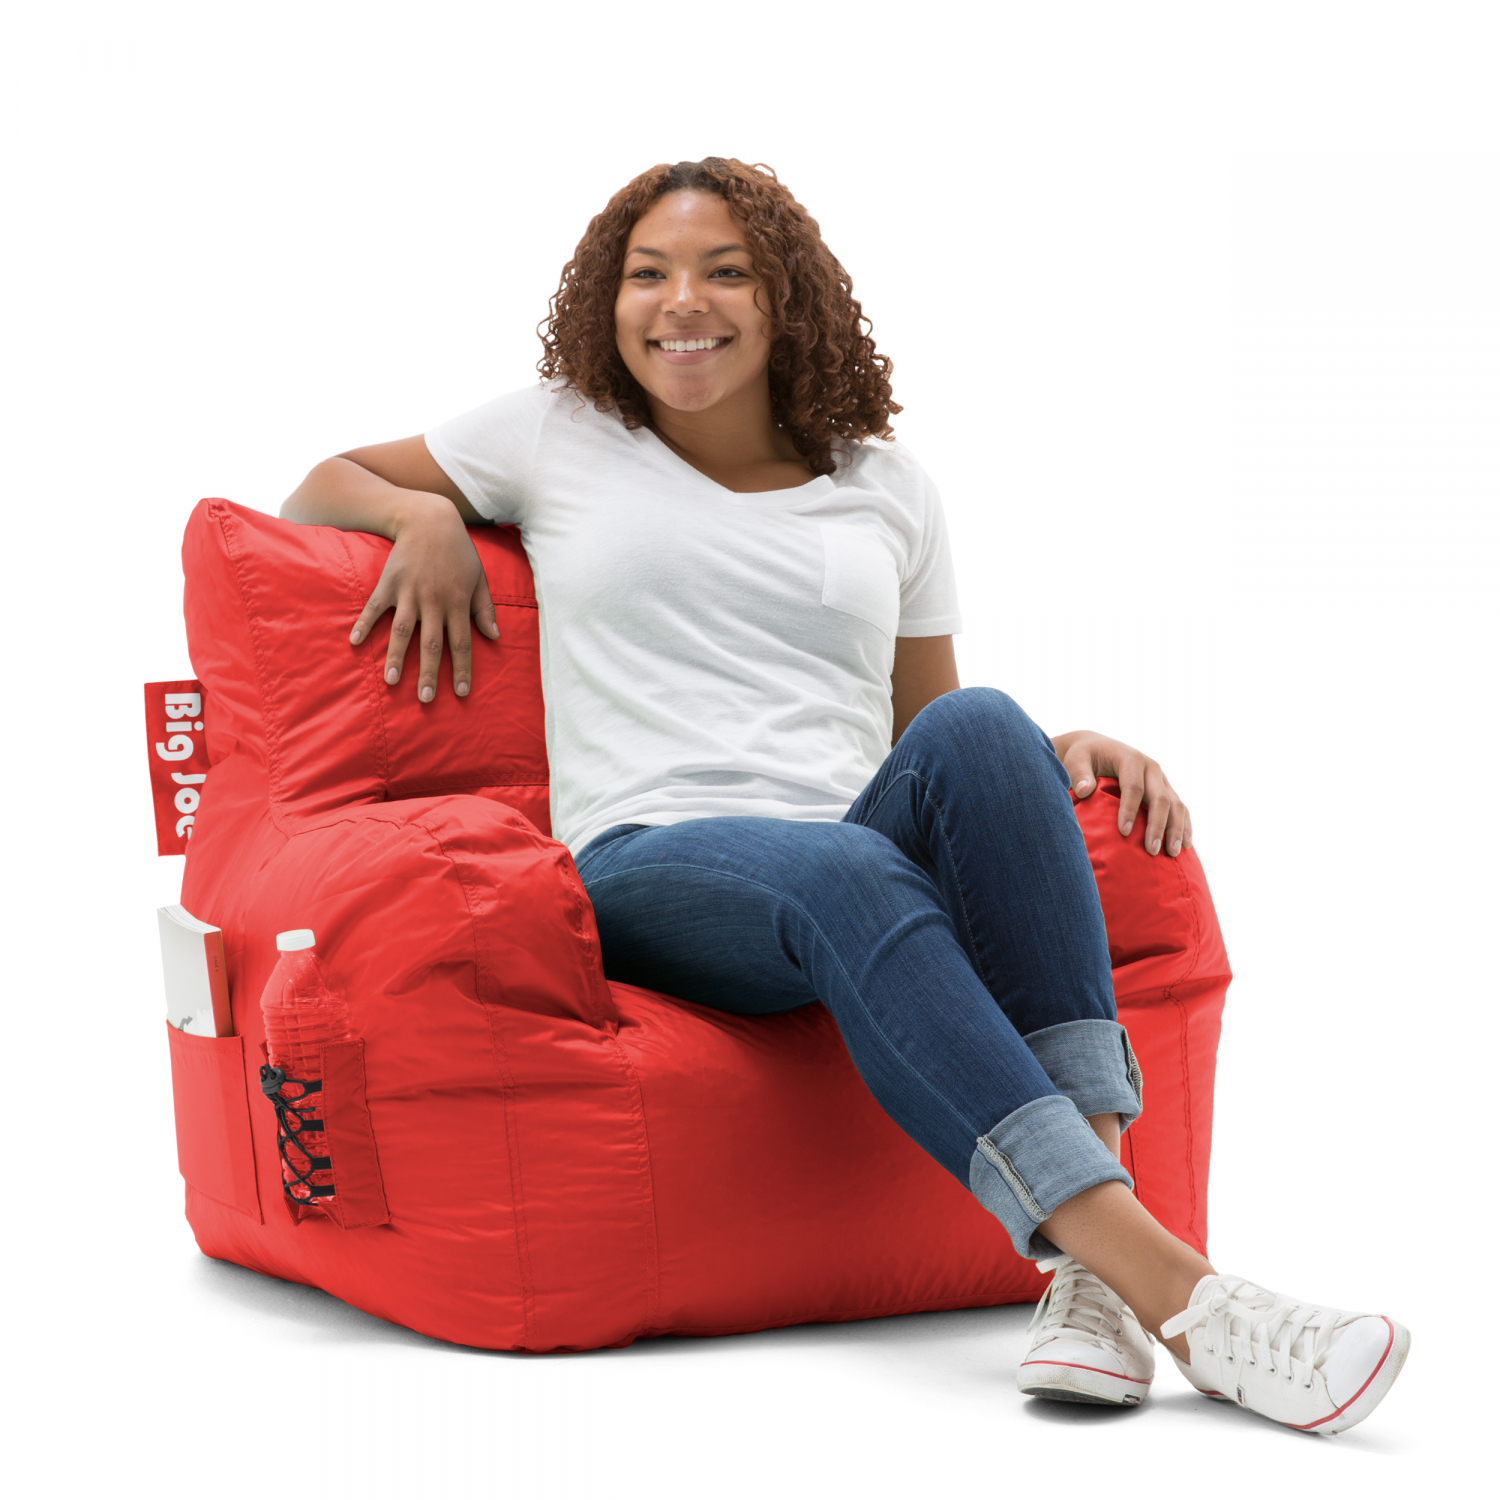 Incredible Details About Red Big Joe Dorm Bean Bag Chair Bedroom Game Sports Room Lounge Soft Cushion Sit Beatyapartments Chair Design Images Beatyapartmentscom